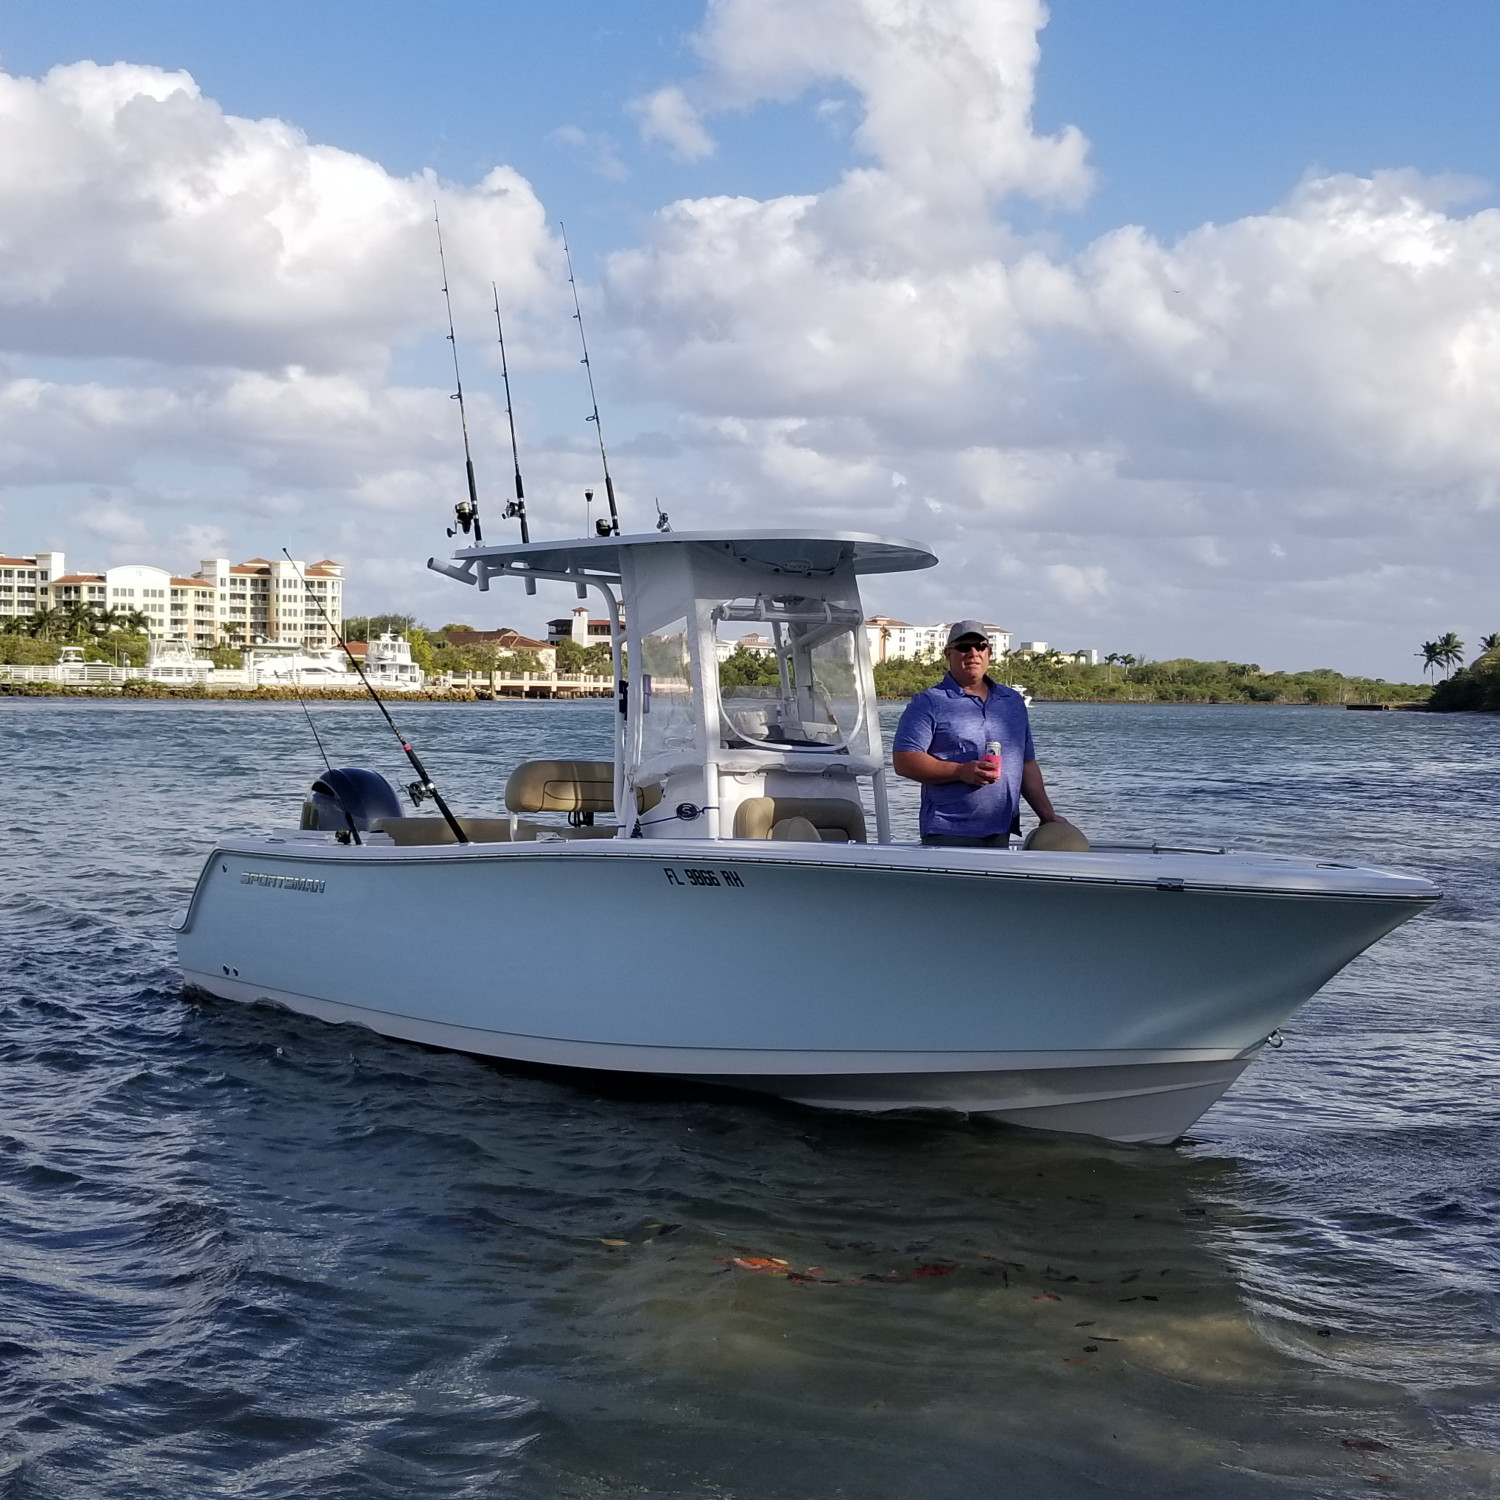 Title: Jupiter inlet pit stop - On board their Sportsman Open 232 Center Console - Location: Jupiter, Fl. Participating in the Photo Contest #SportsmanMarch2018